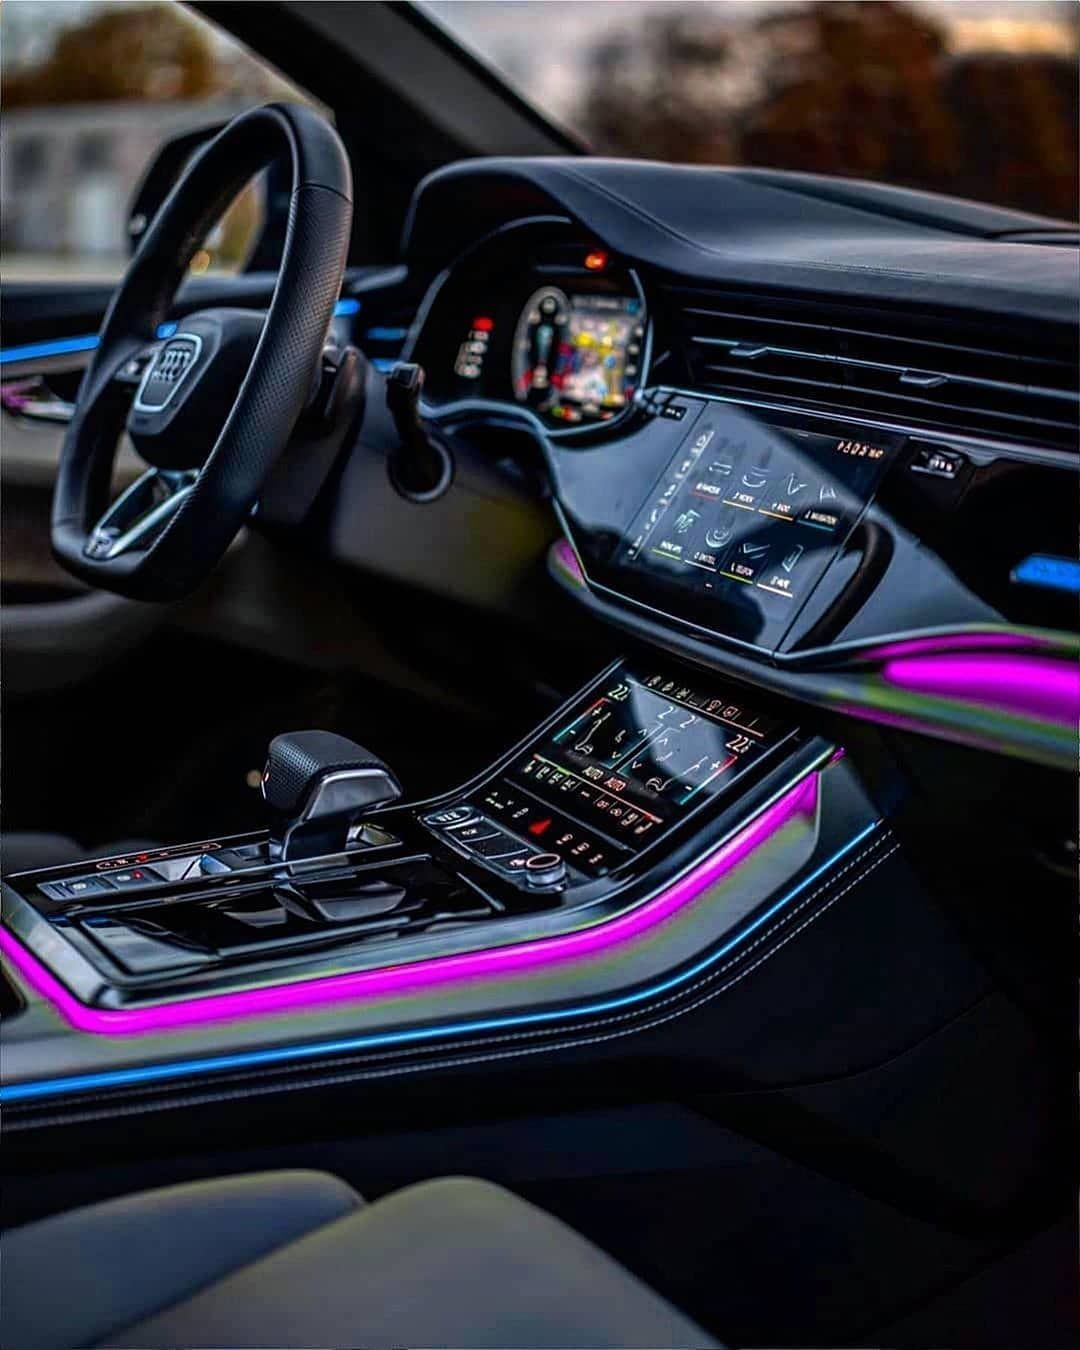 Q8 Interior Rate It From 1 100 Follow Uber Luxury For More Via Aboutyunus Carhoots In 2020 Audi Rs Luxury Car Interior Best Luxury Cars